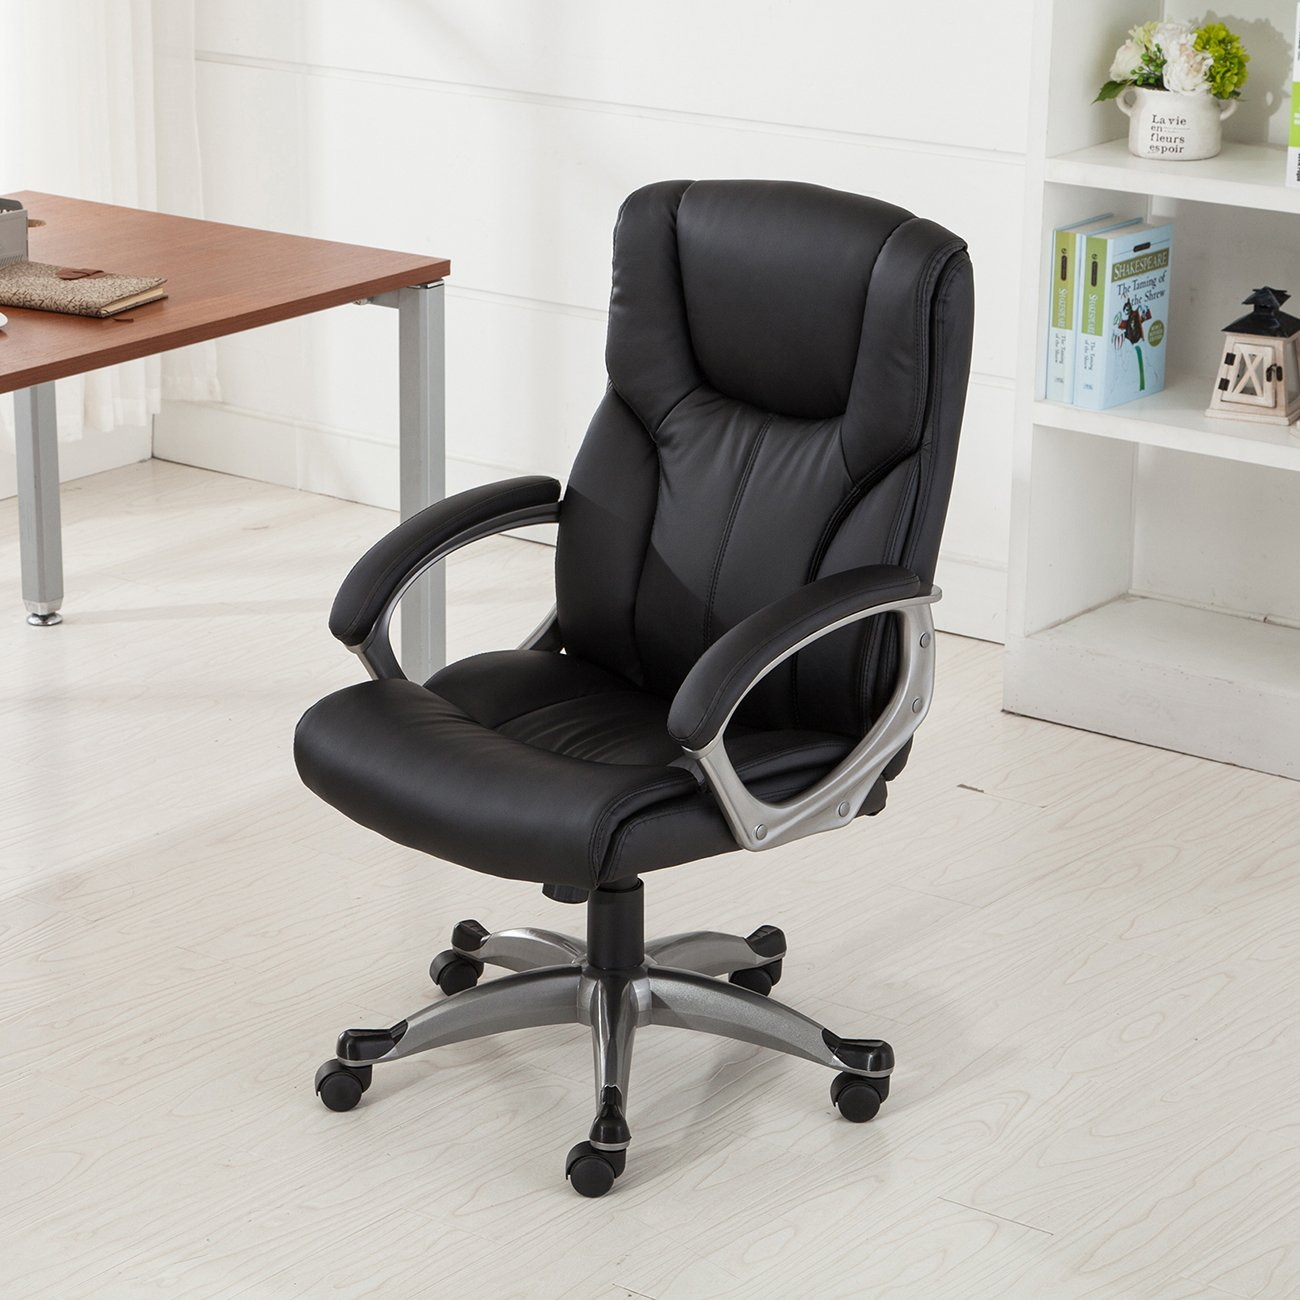 Belleze Executive Modern High-Back Leather Chair Home Office Ergonomic Adjustable Height (Black)